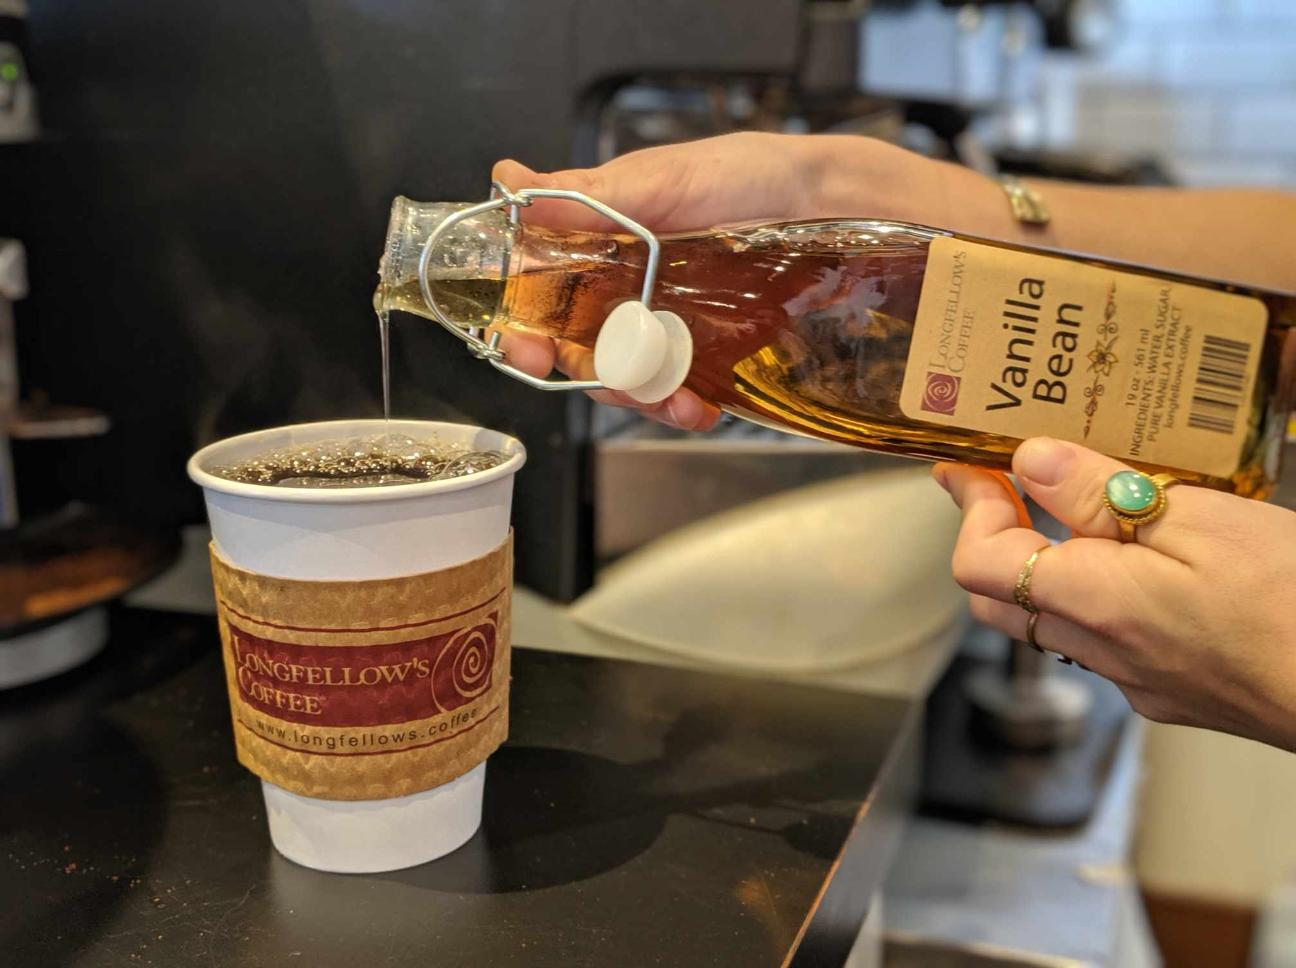 Pouring house-made syrup into a coffee cup with a logo